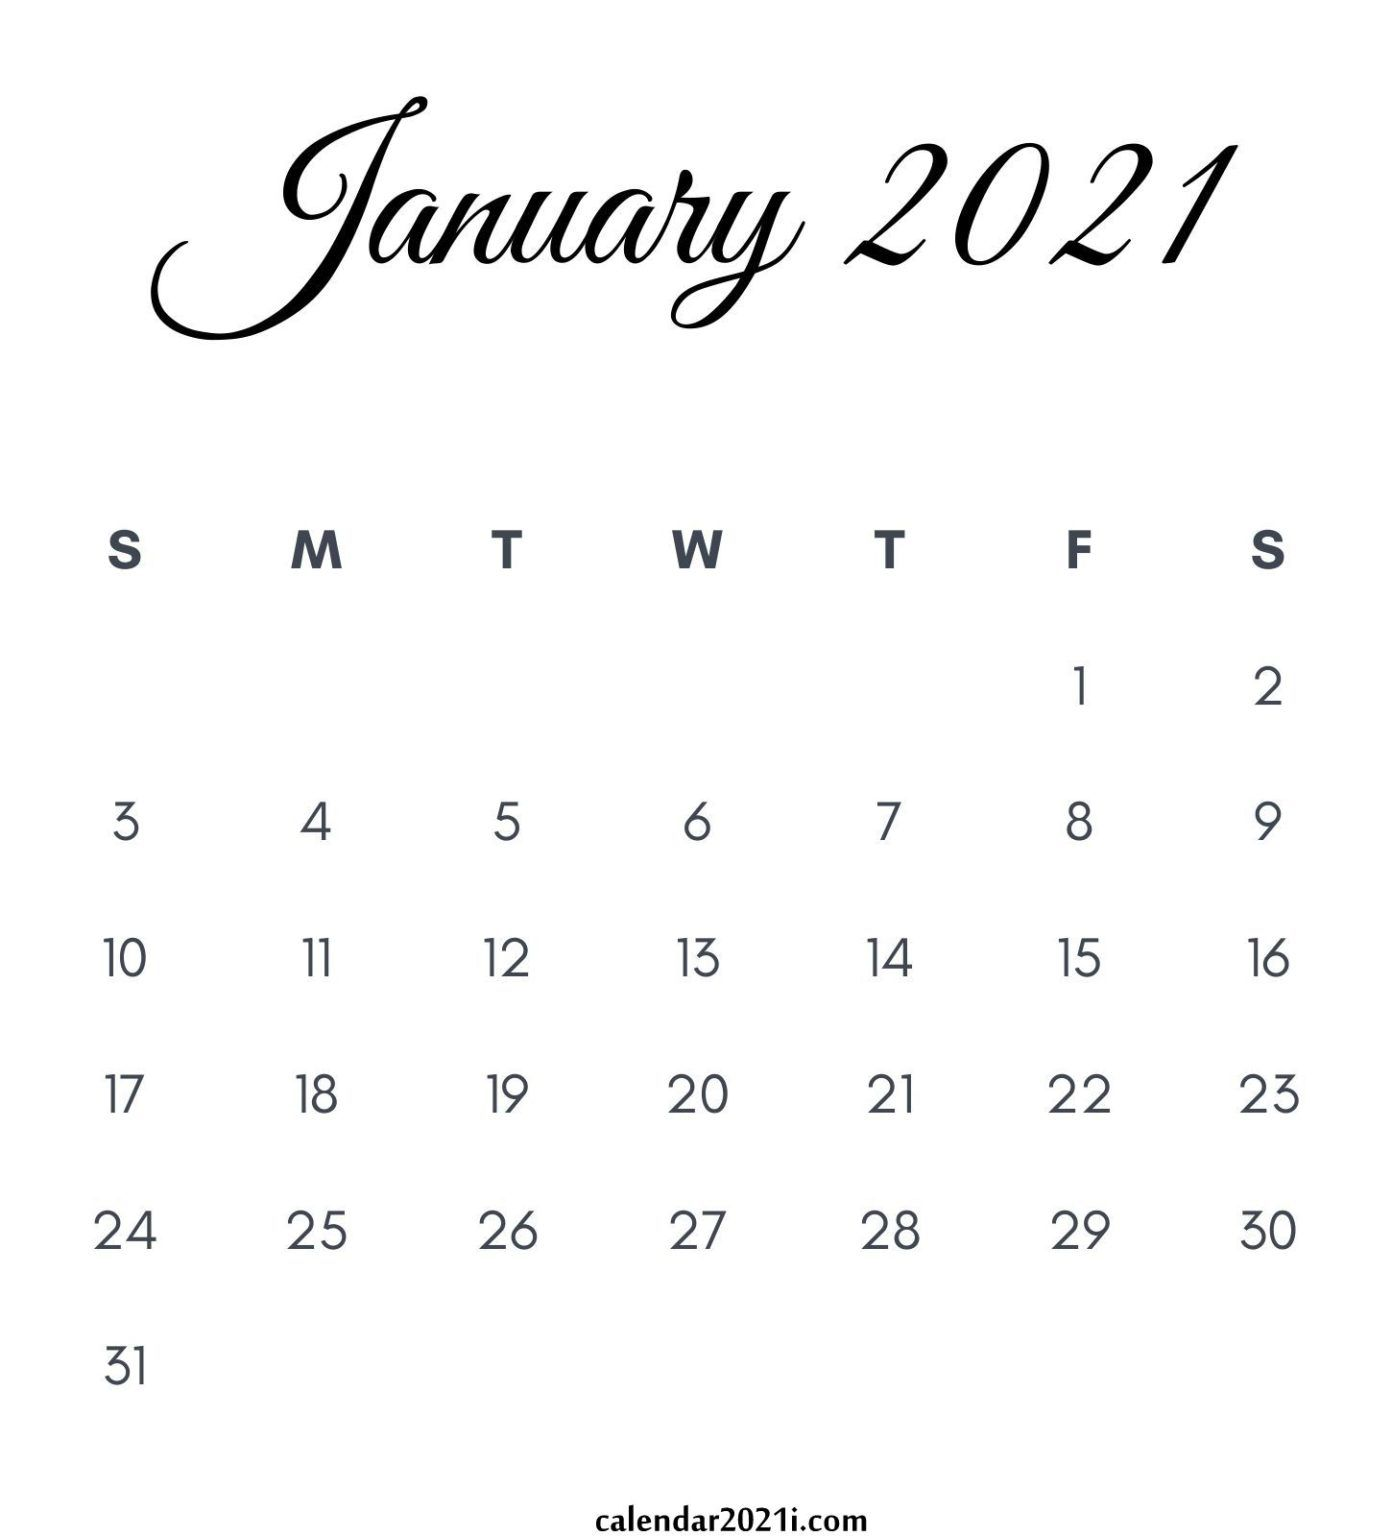 January 2021 Calendar Printable in 2020 | Kalender